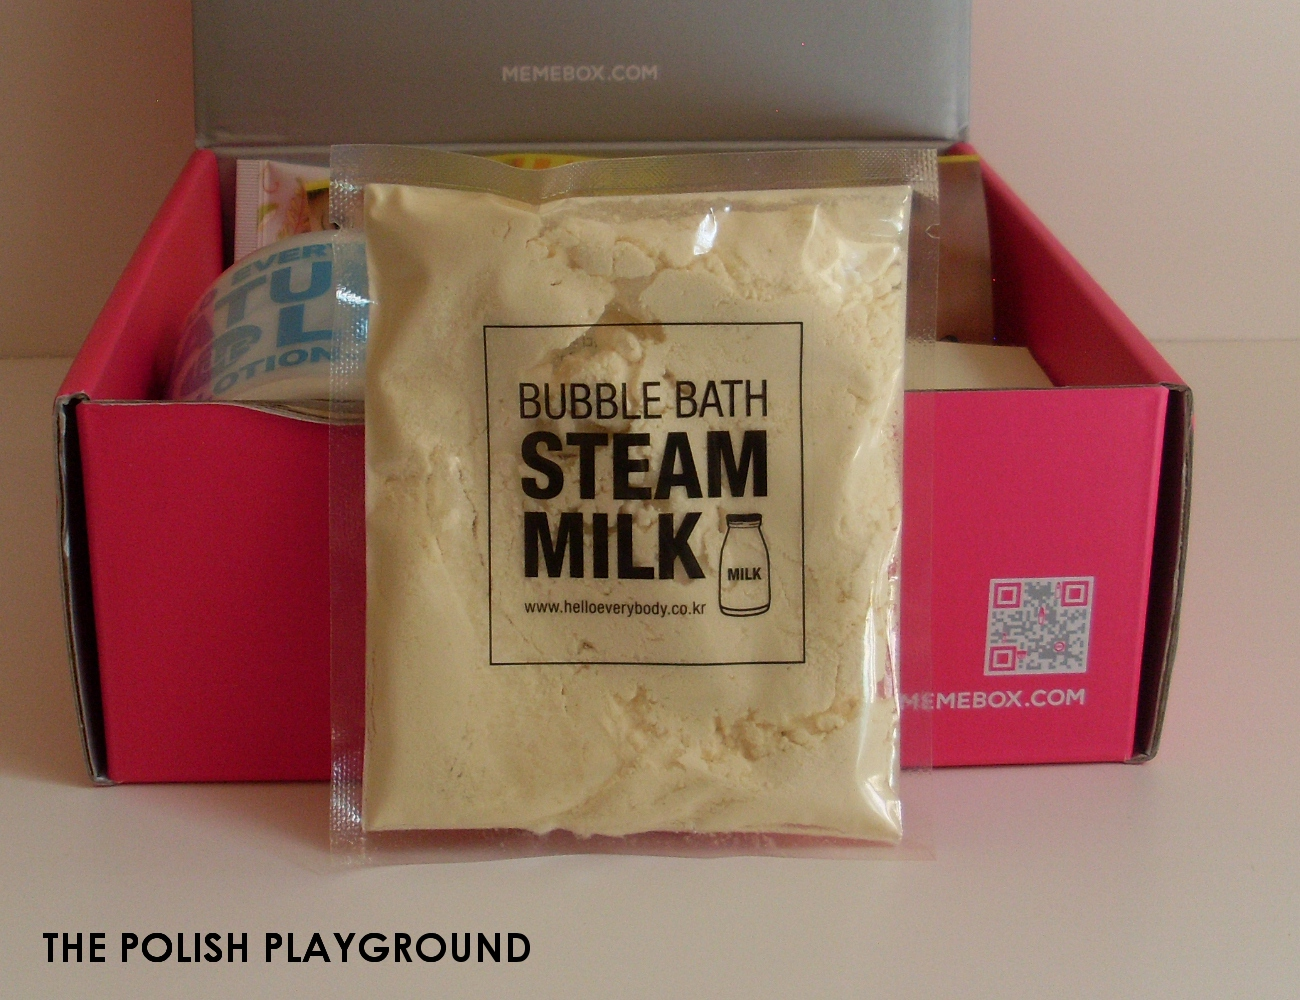 Memebox Special #7 Milk Unboxing - Hello Everybody Bubble Bath Steam Milk